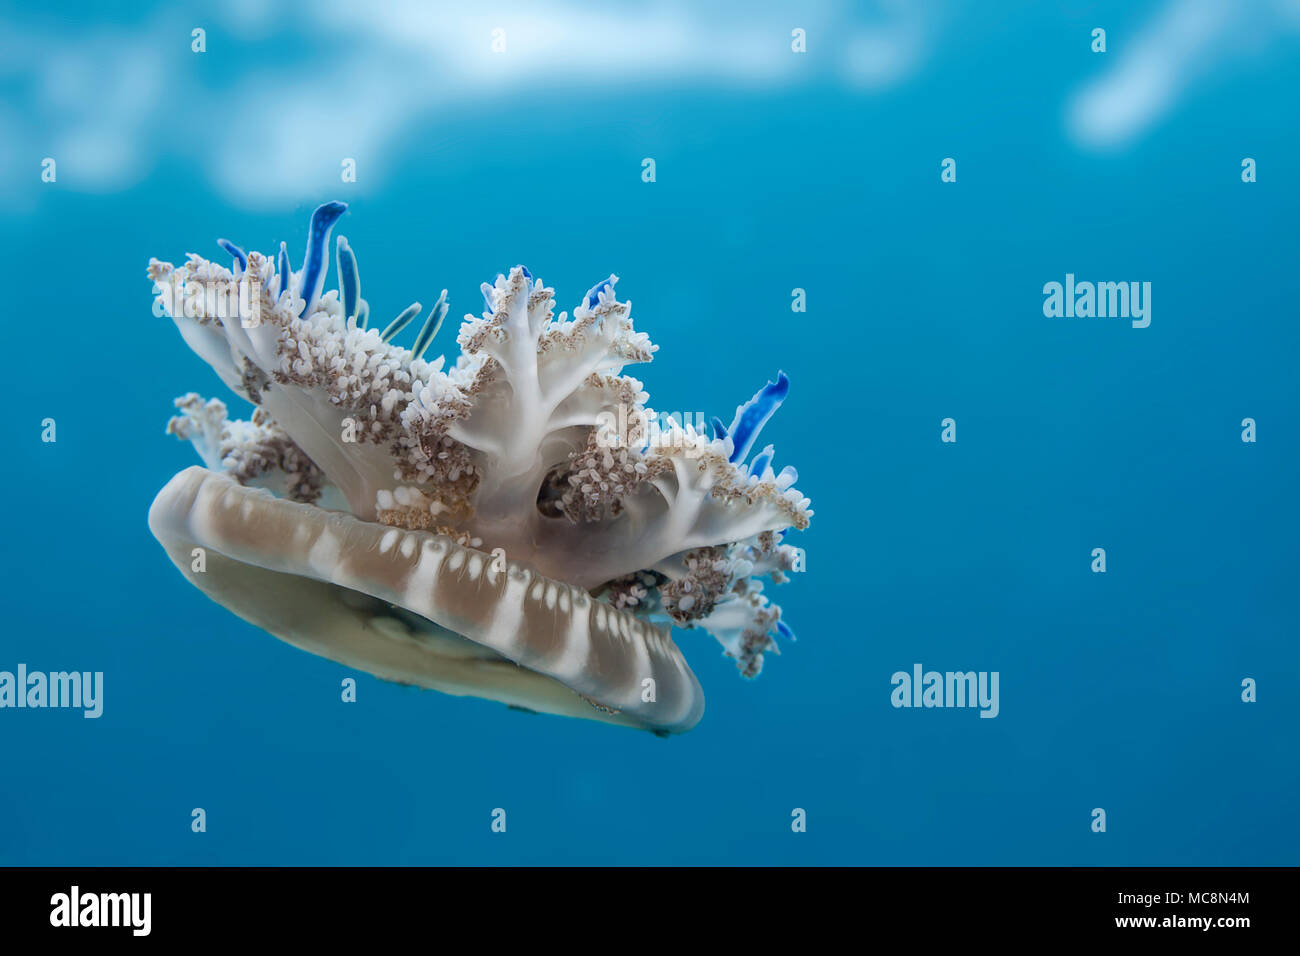 Imitating it's close relative the sea anemones, this Mangrove upsidedown jellyfish, Cassiopea xamachana, is frequently seen resting, bell down, tentac - Stock Image